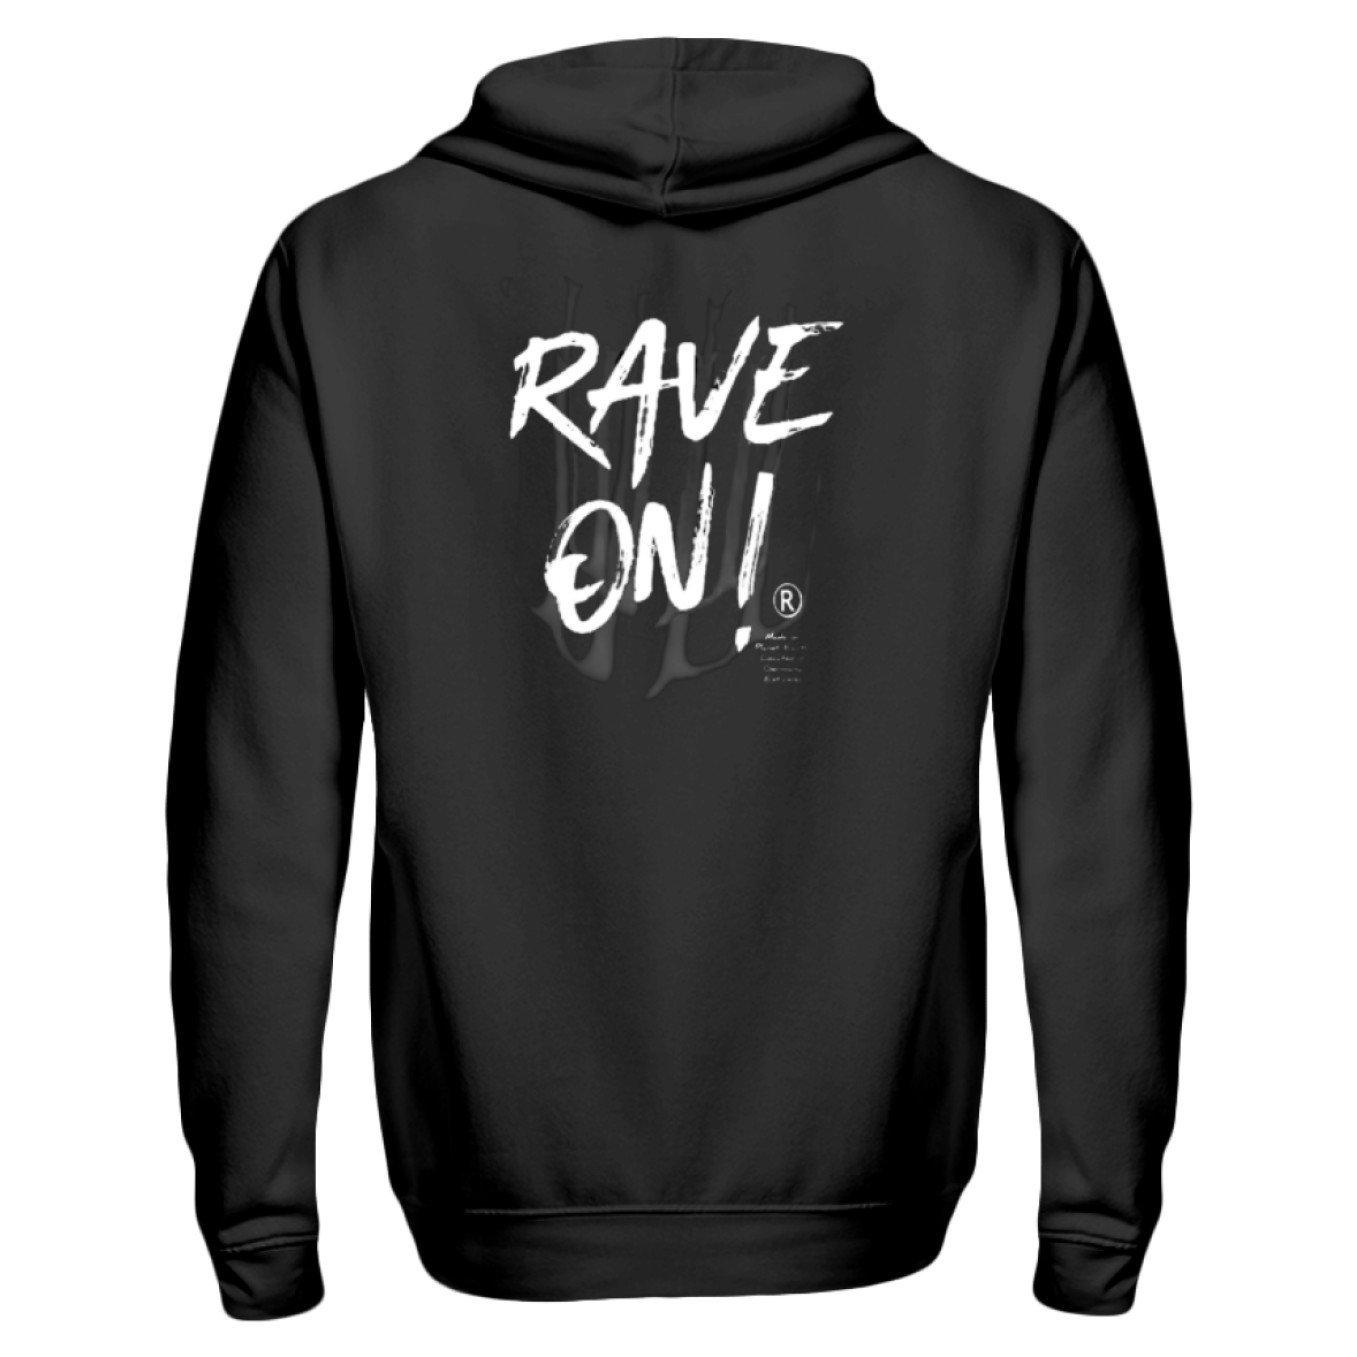 Rave On!® - Made On Planet Earth B2k20 - Zip-Hoodie ZipperB Black / S - Rave On!® der Club & Techno Szene Shop für Coole Junge Mode Streetwear Style & Fashion Outfits + Sexy Festival 420 Stuff